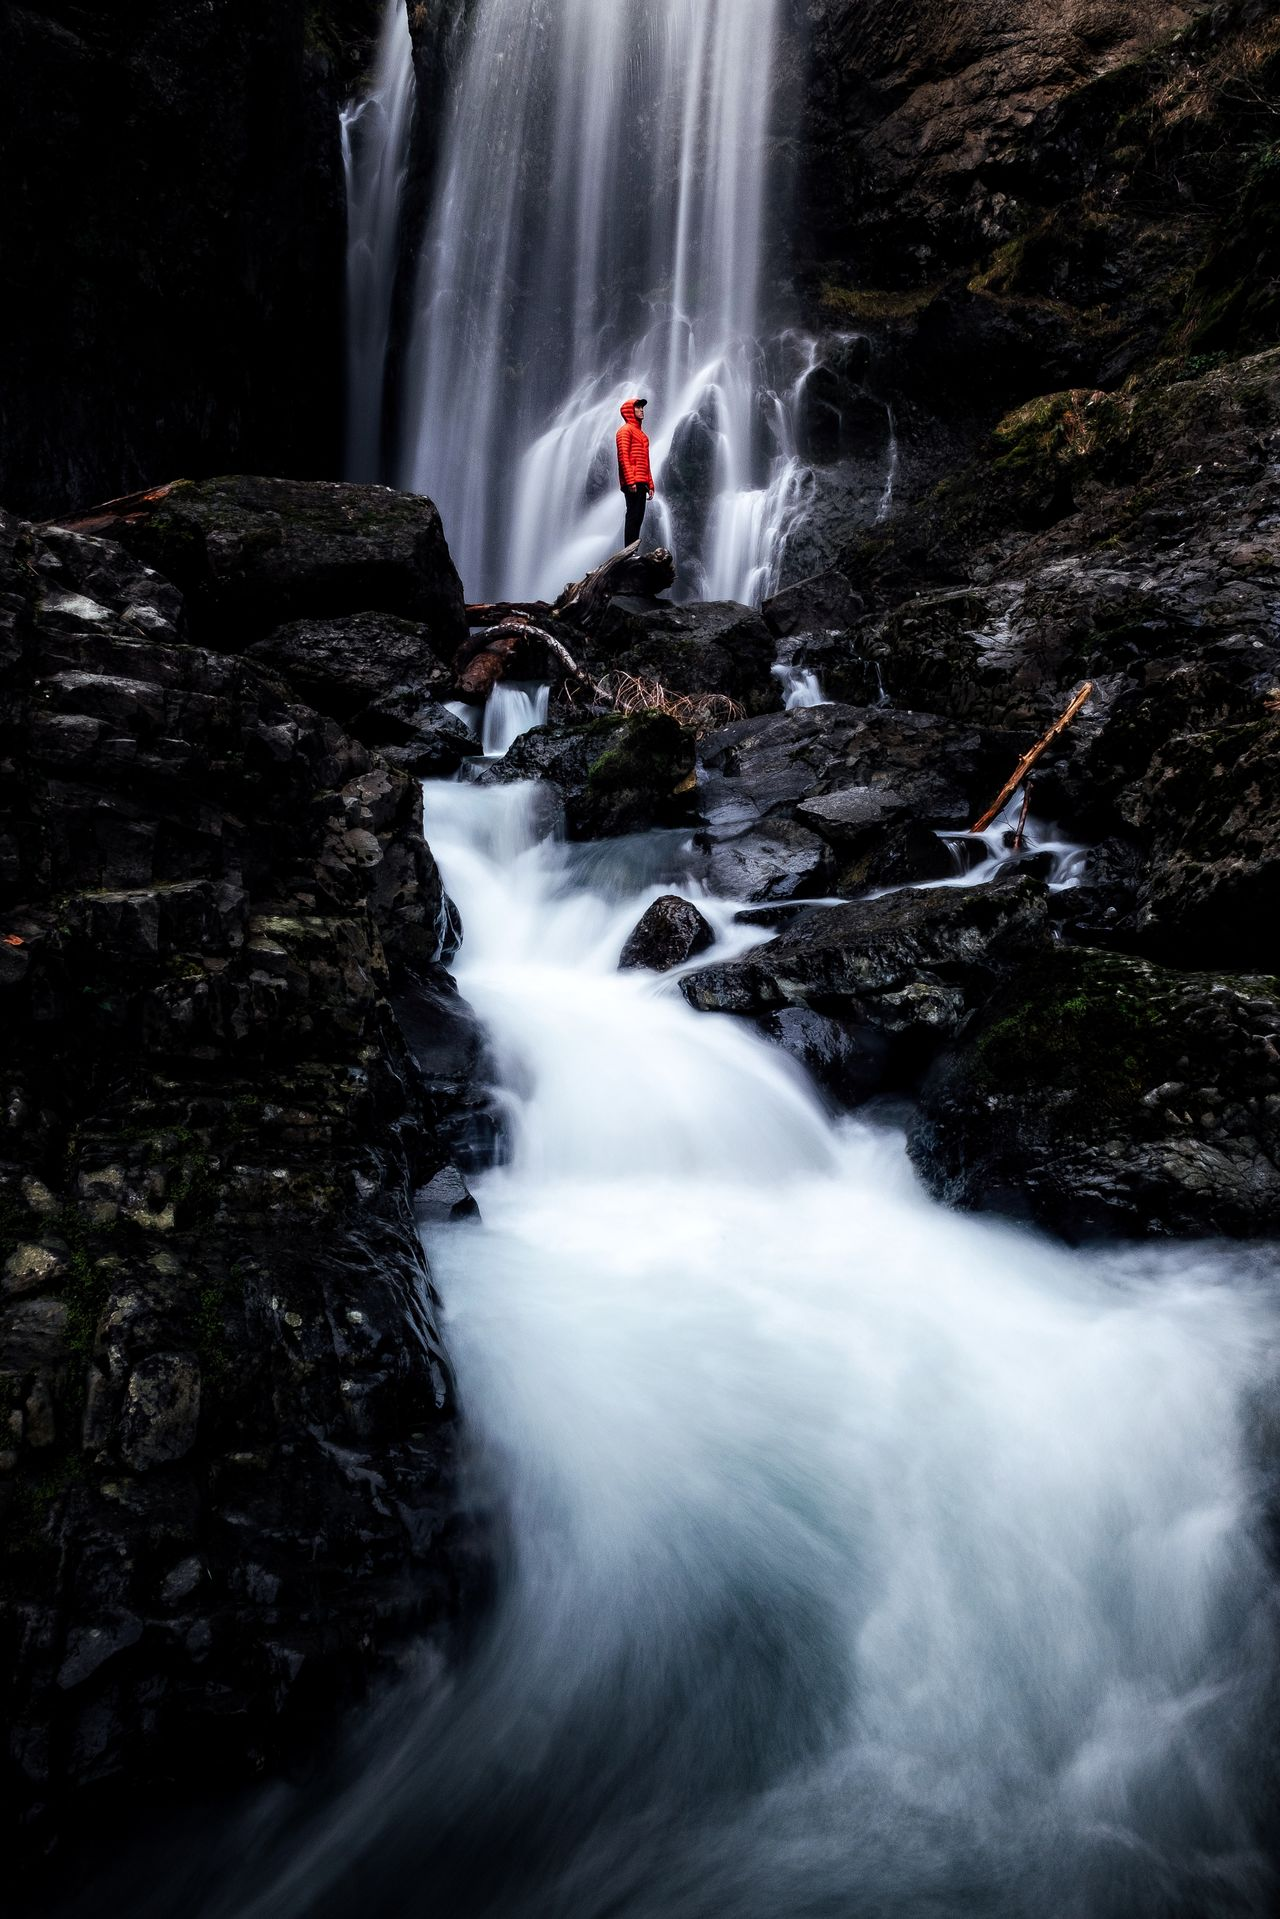 Rush Waterfall Nature Beauty In Nature One Person Outdoors Motion Rock Climbing People Water PNW Tranquil Scene Landscape Tourism Travel Destinations Scenics Adventure Vista Finding New Frontiers Miles Away